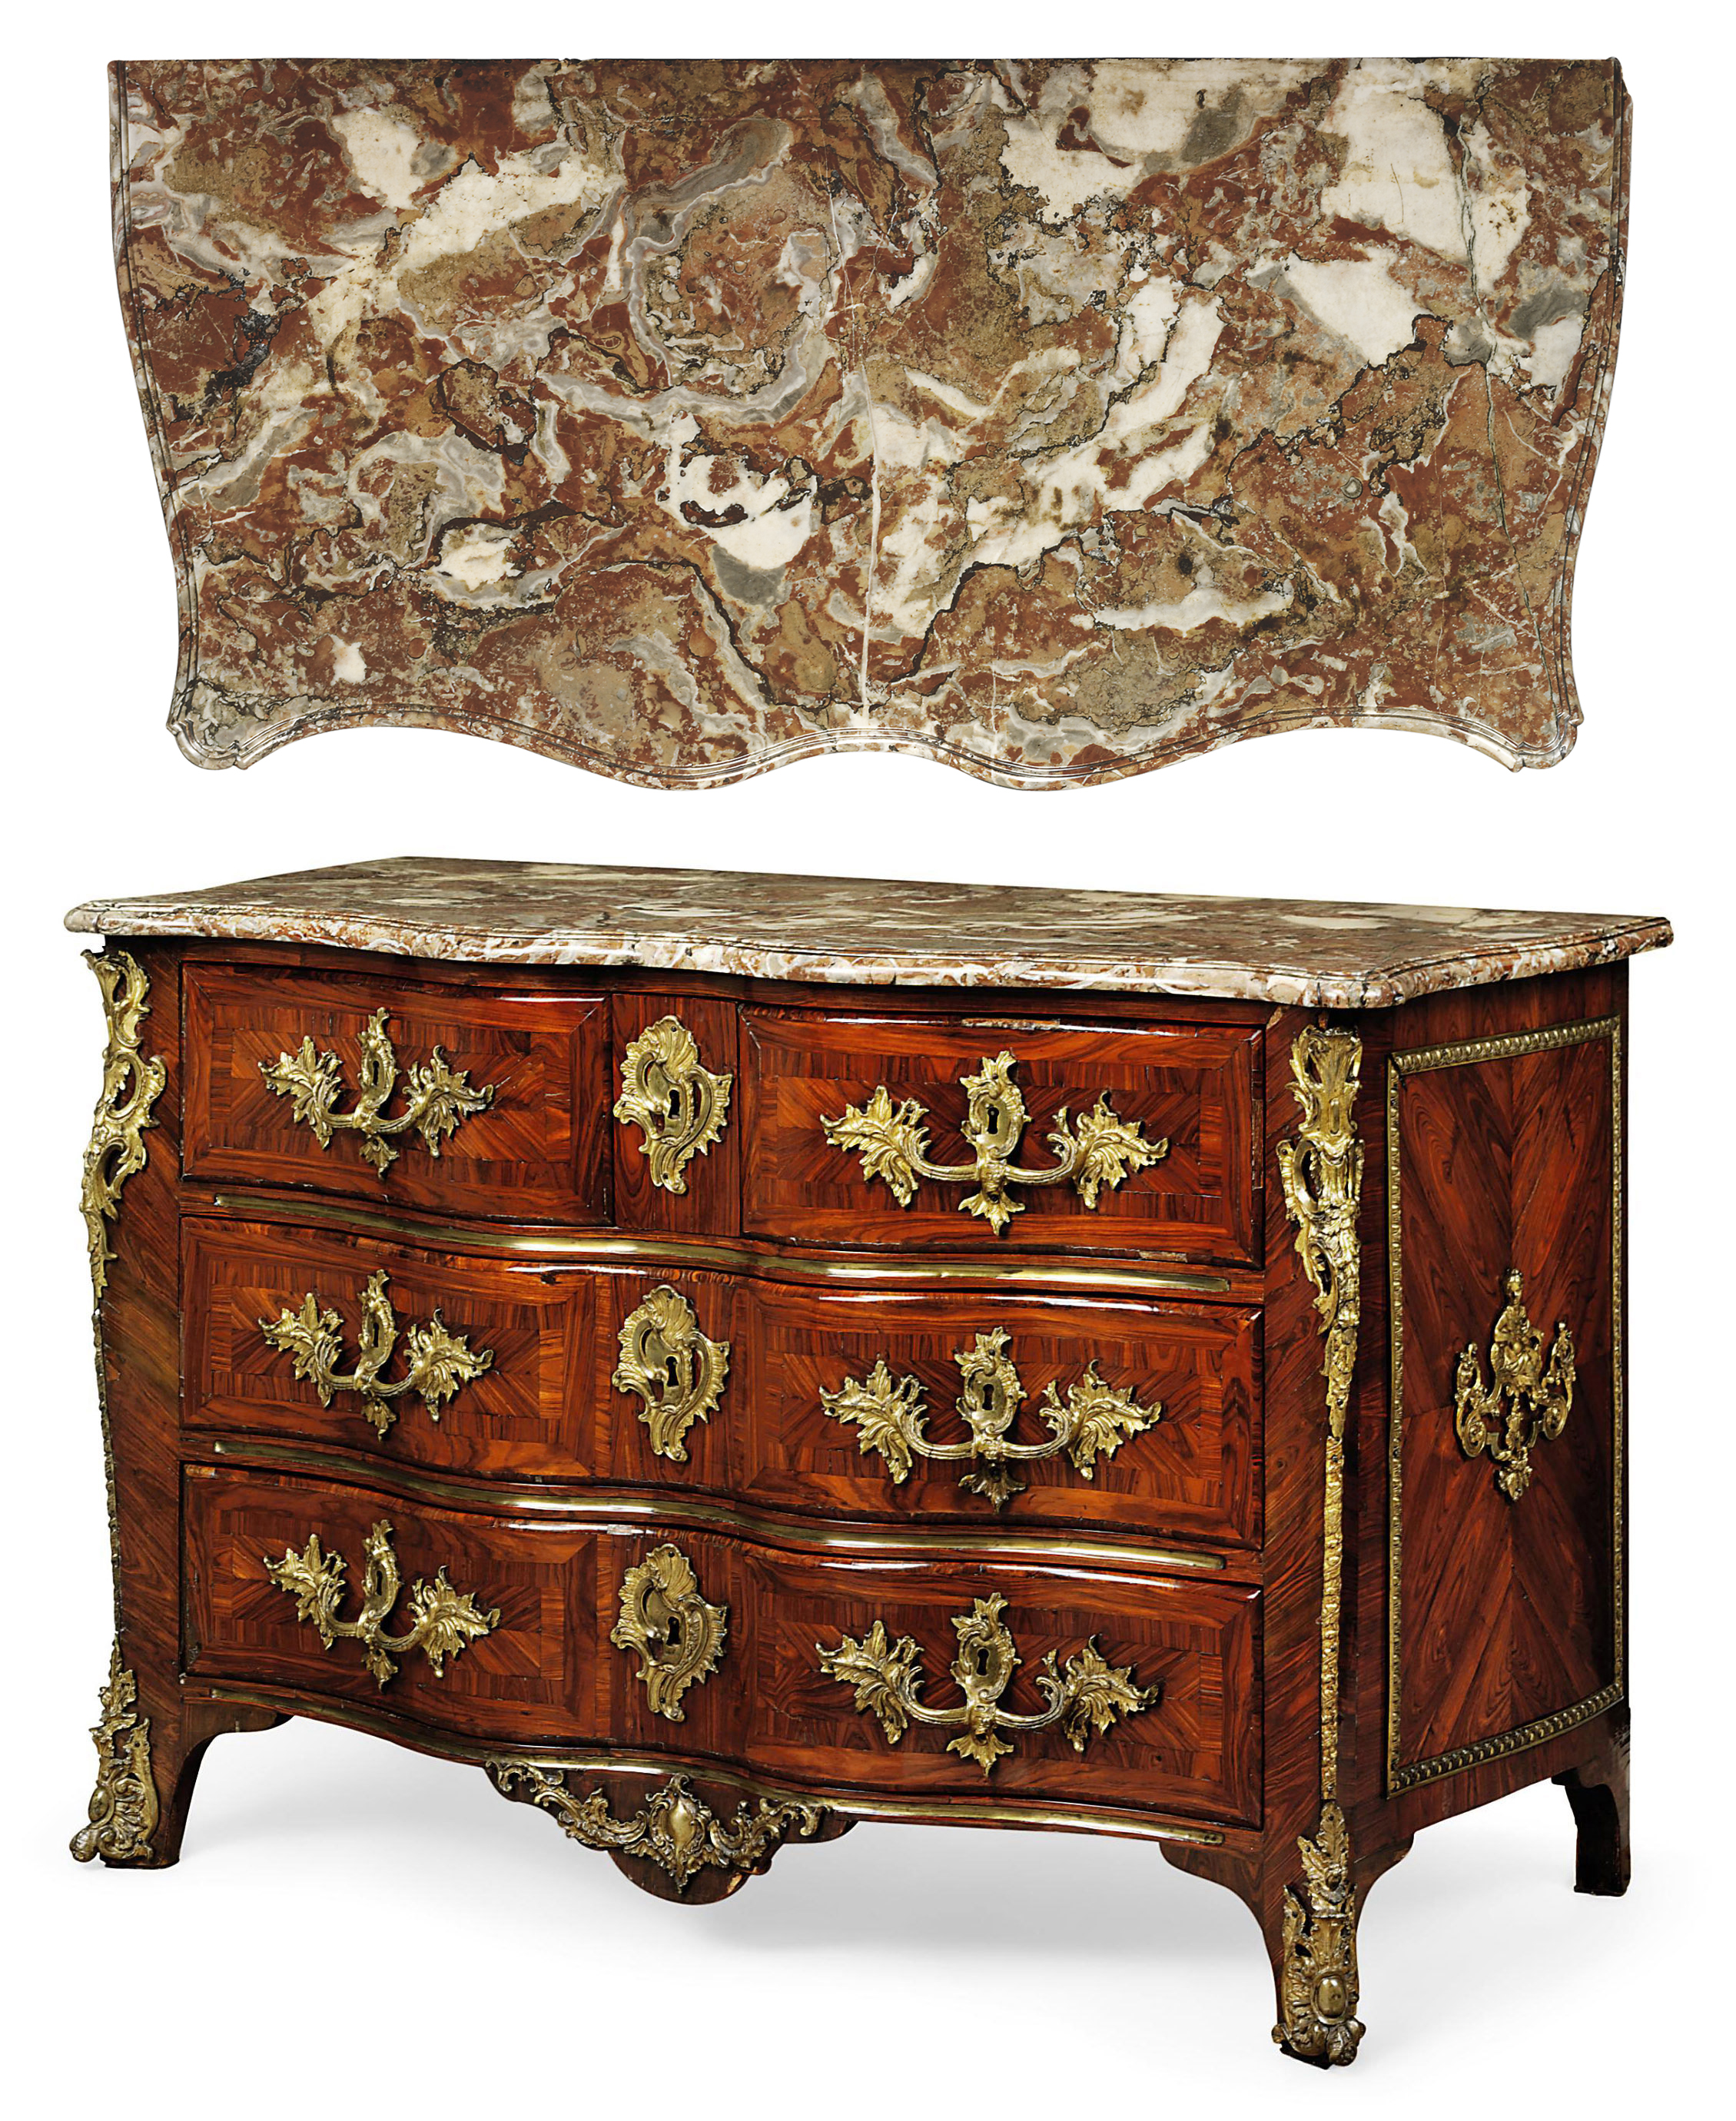 A LOUIS XV ORMOLU-MOUNTED KINGWOOD AND PARQUETRY COMMODE